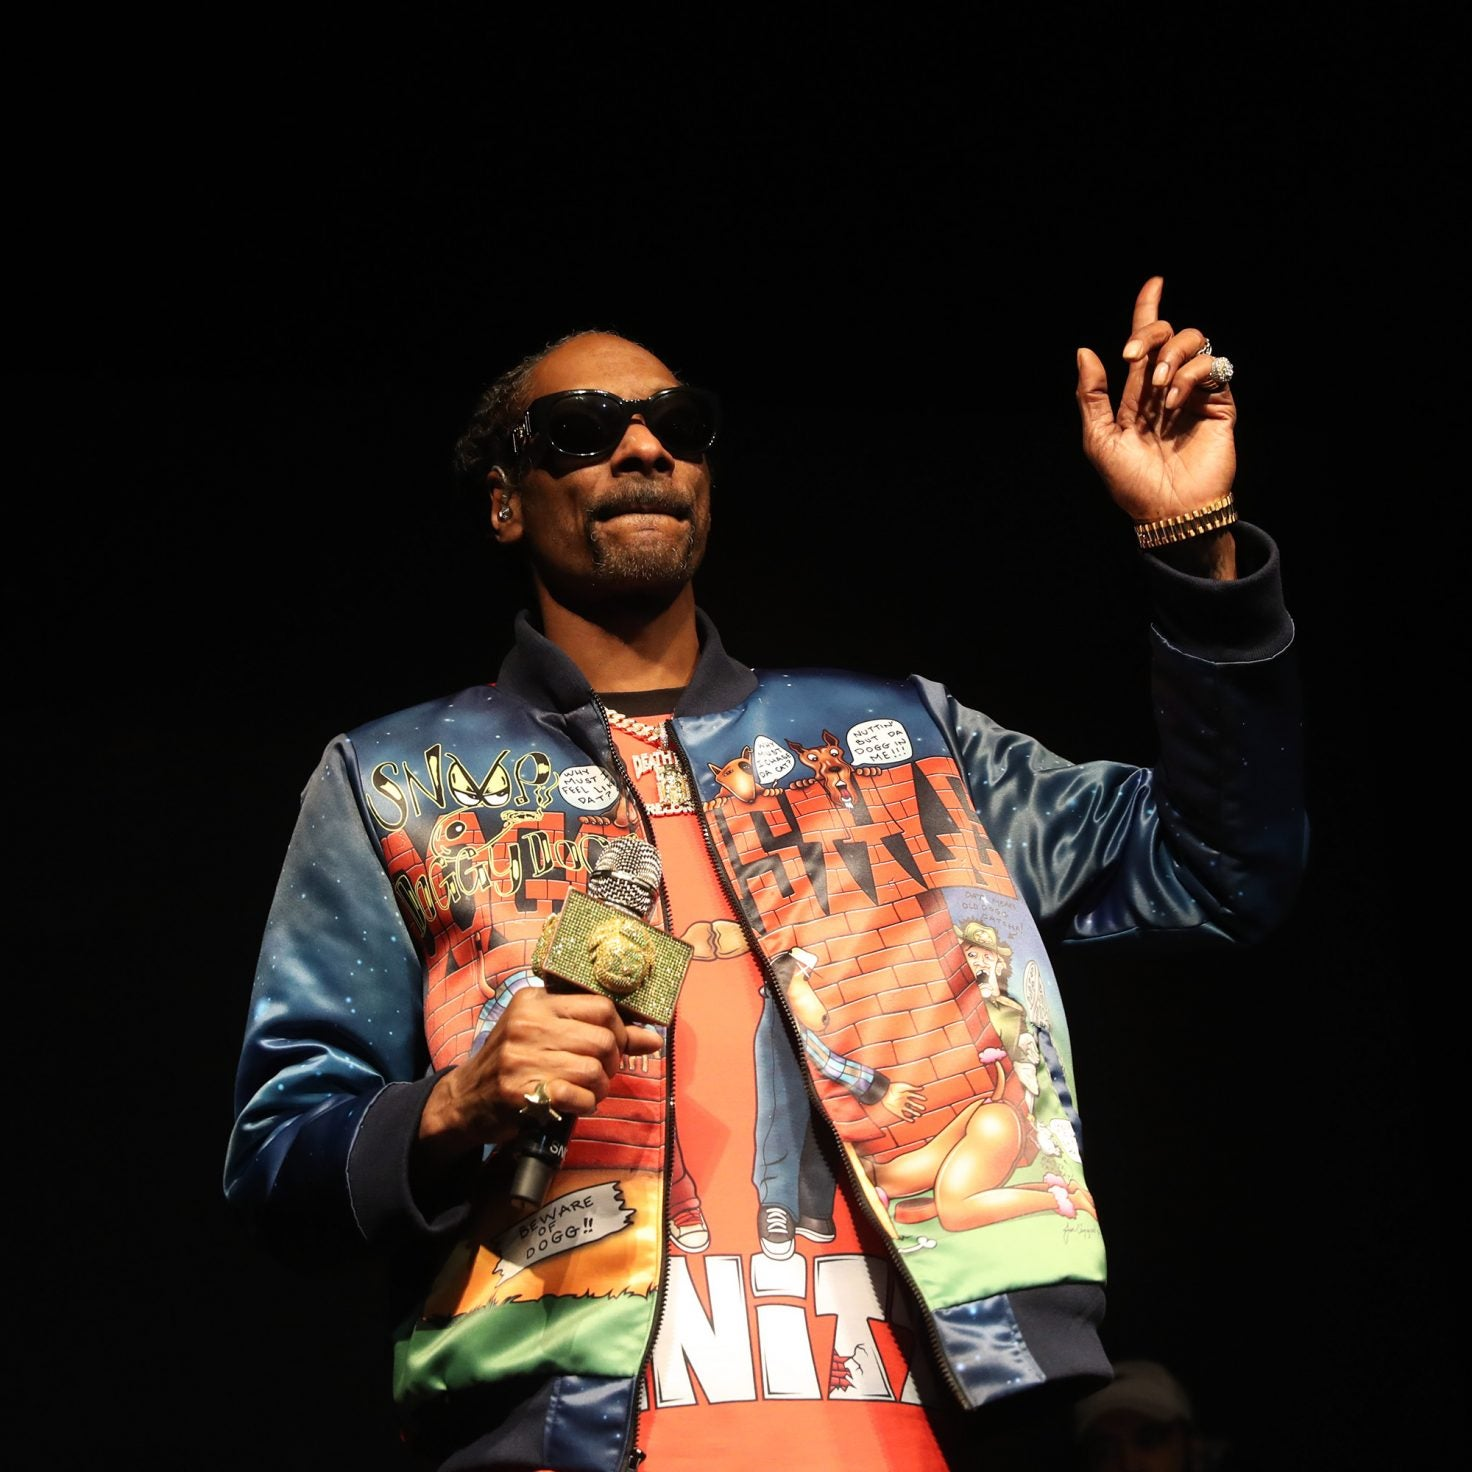 Snoop Dogg Apologizes To Gayle King For 'Disrespectful' Rant